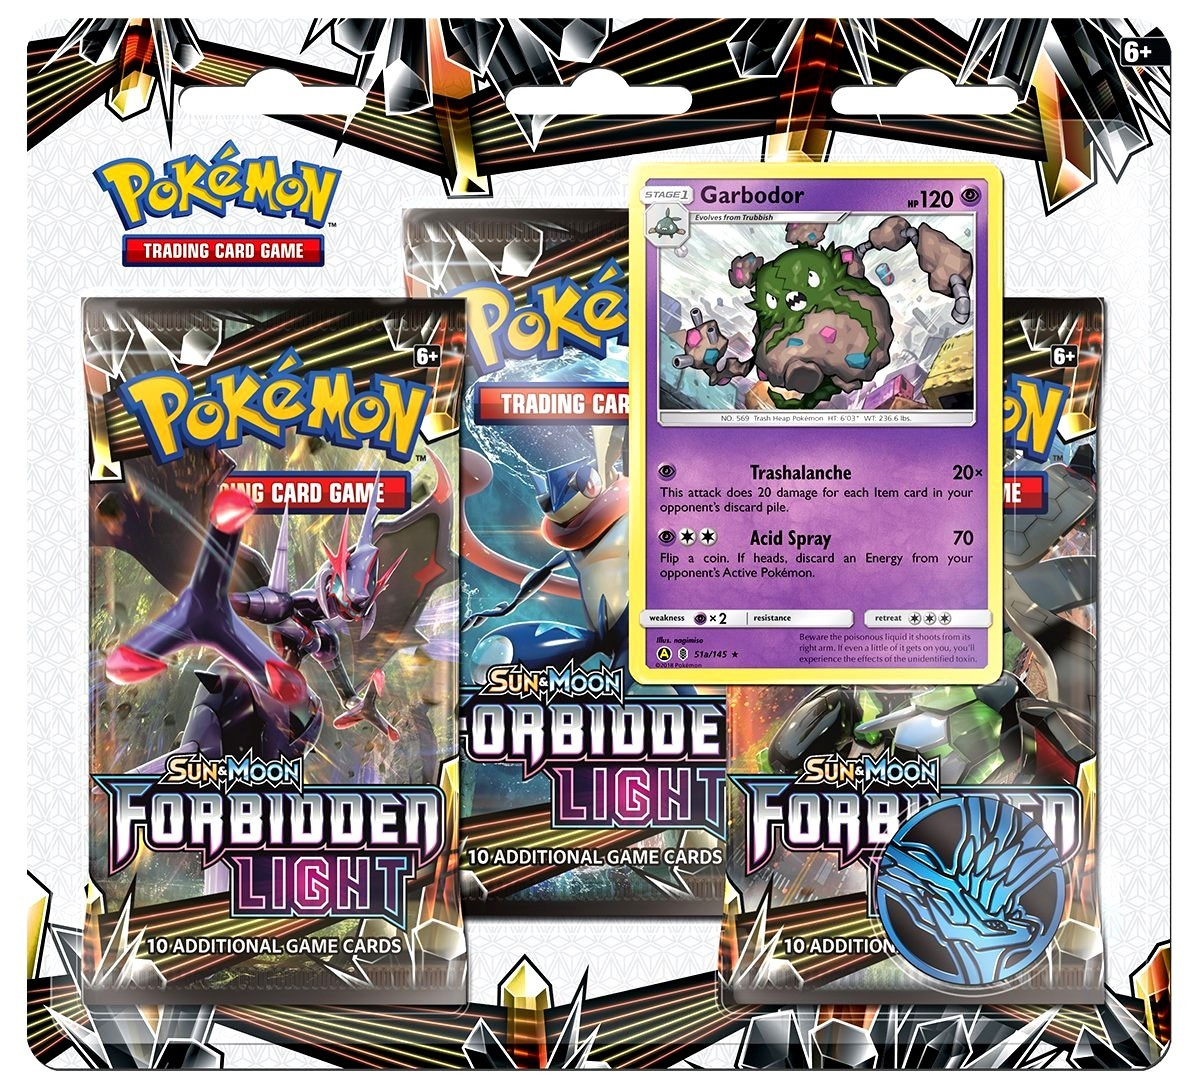 Pokémon TCG: Sun & Moon 6 Forbidden Light 3-pack Blister